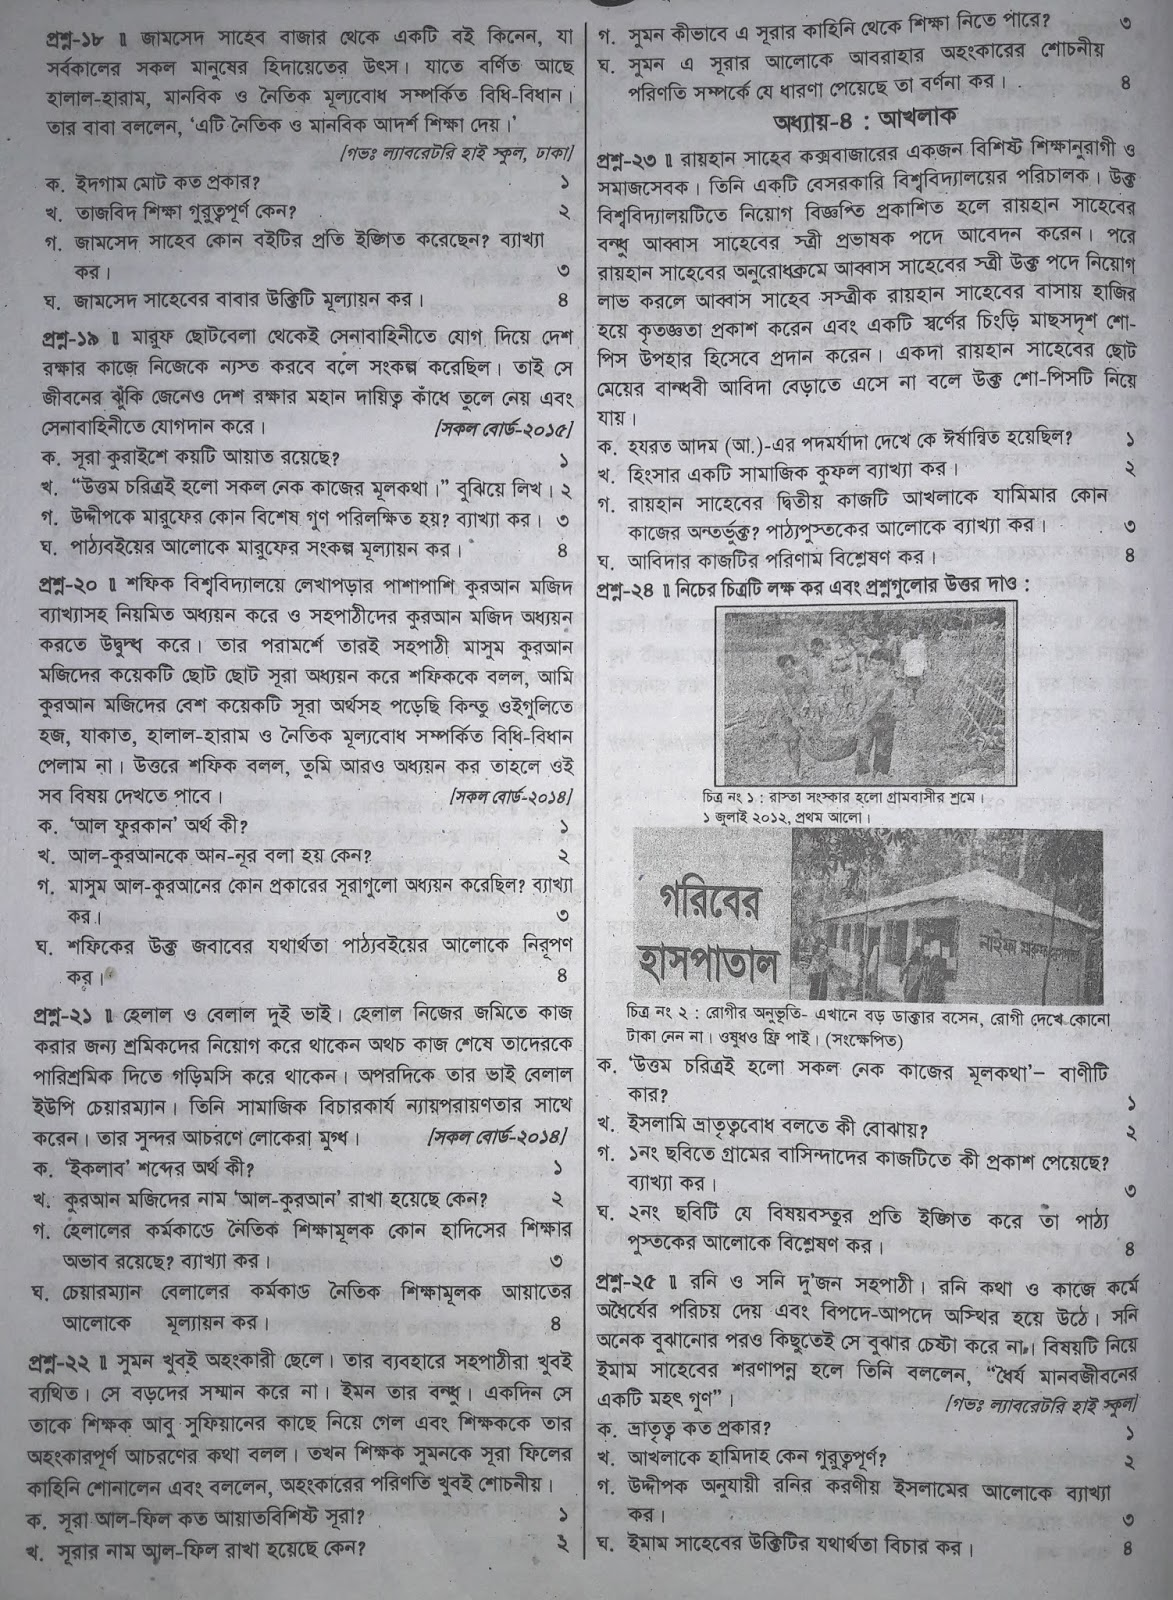 jsc Islam and Moral Education suggestion, exam question paper, model question, mcq question, question pattern, preparation for dhaka board, all boards